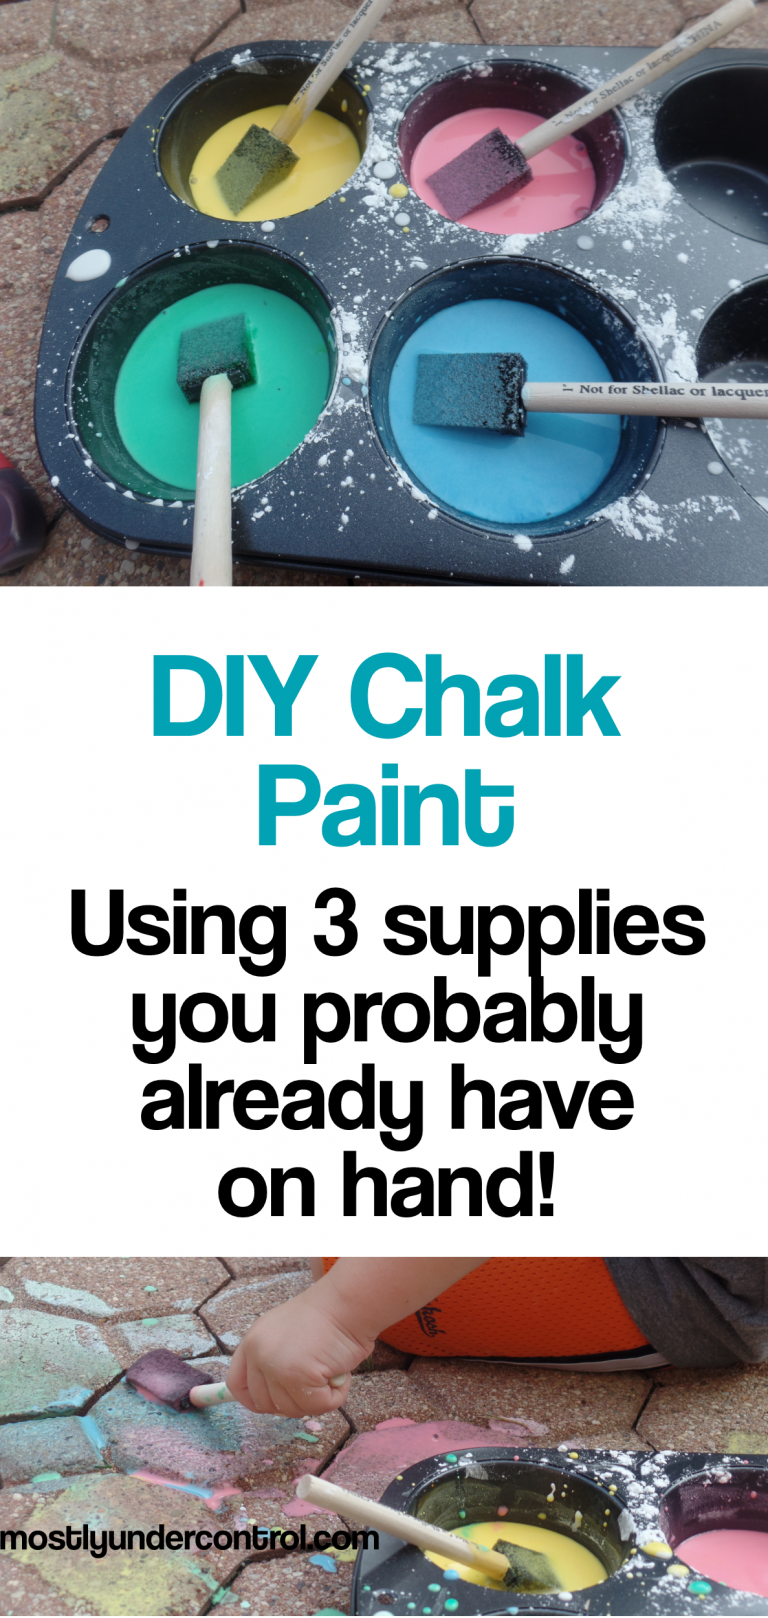 DIY Chalk paint - using 3 supplies you probably already have on hand